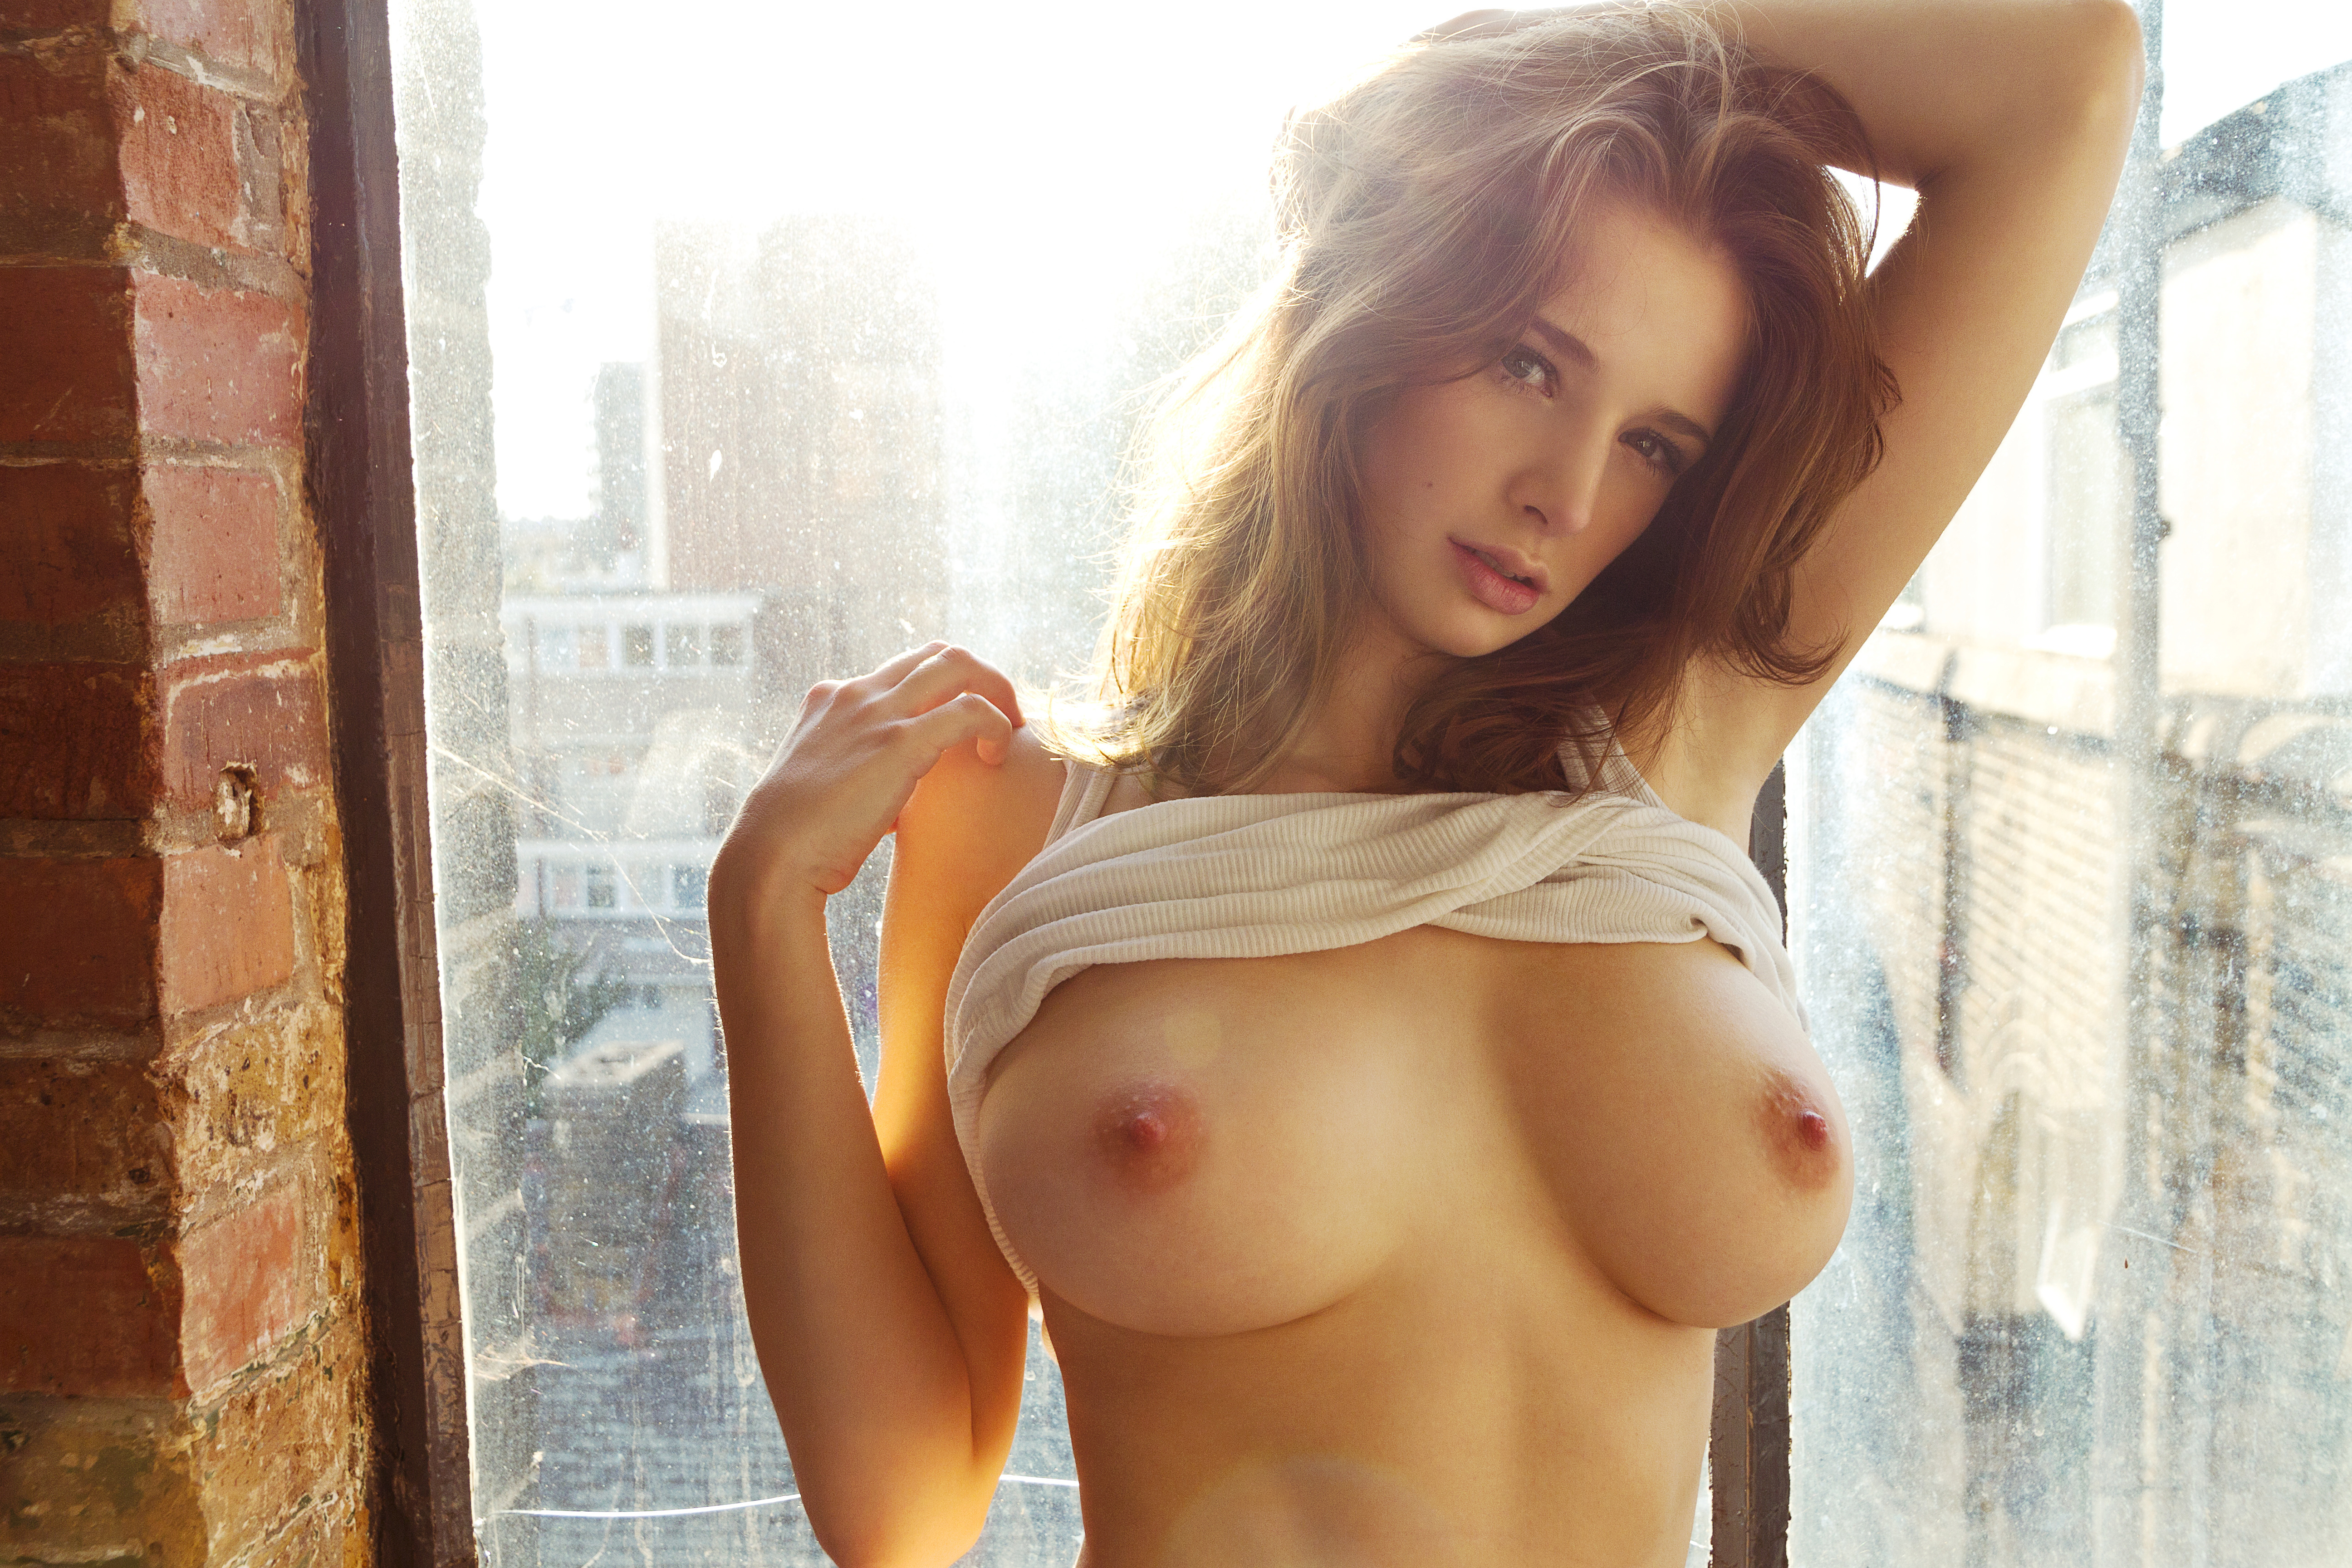 vinna reed and lili lou all the way inside #EmilyShaw #topless #brunette #beauty #standing #bywindow #shirtpulledup #handonhead #sunlit #cityview #sexy